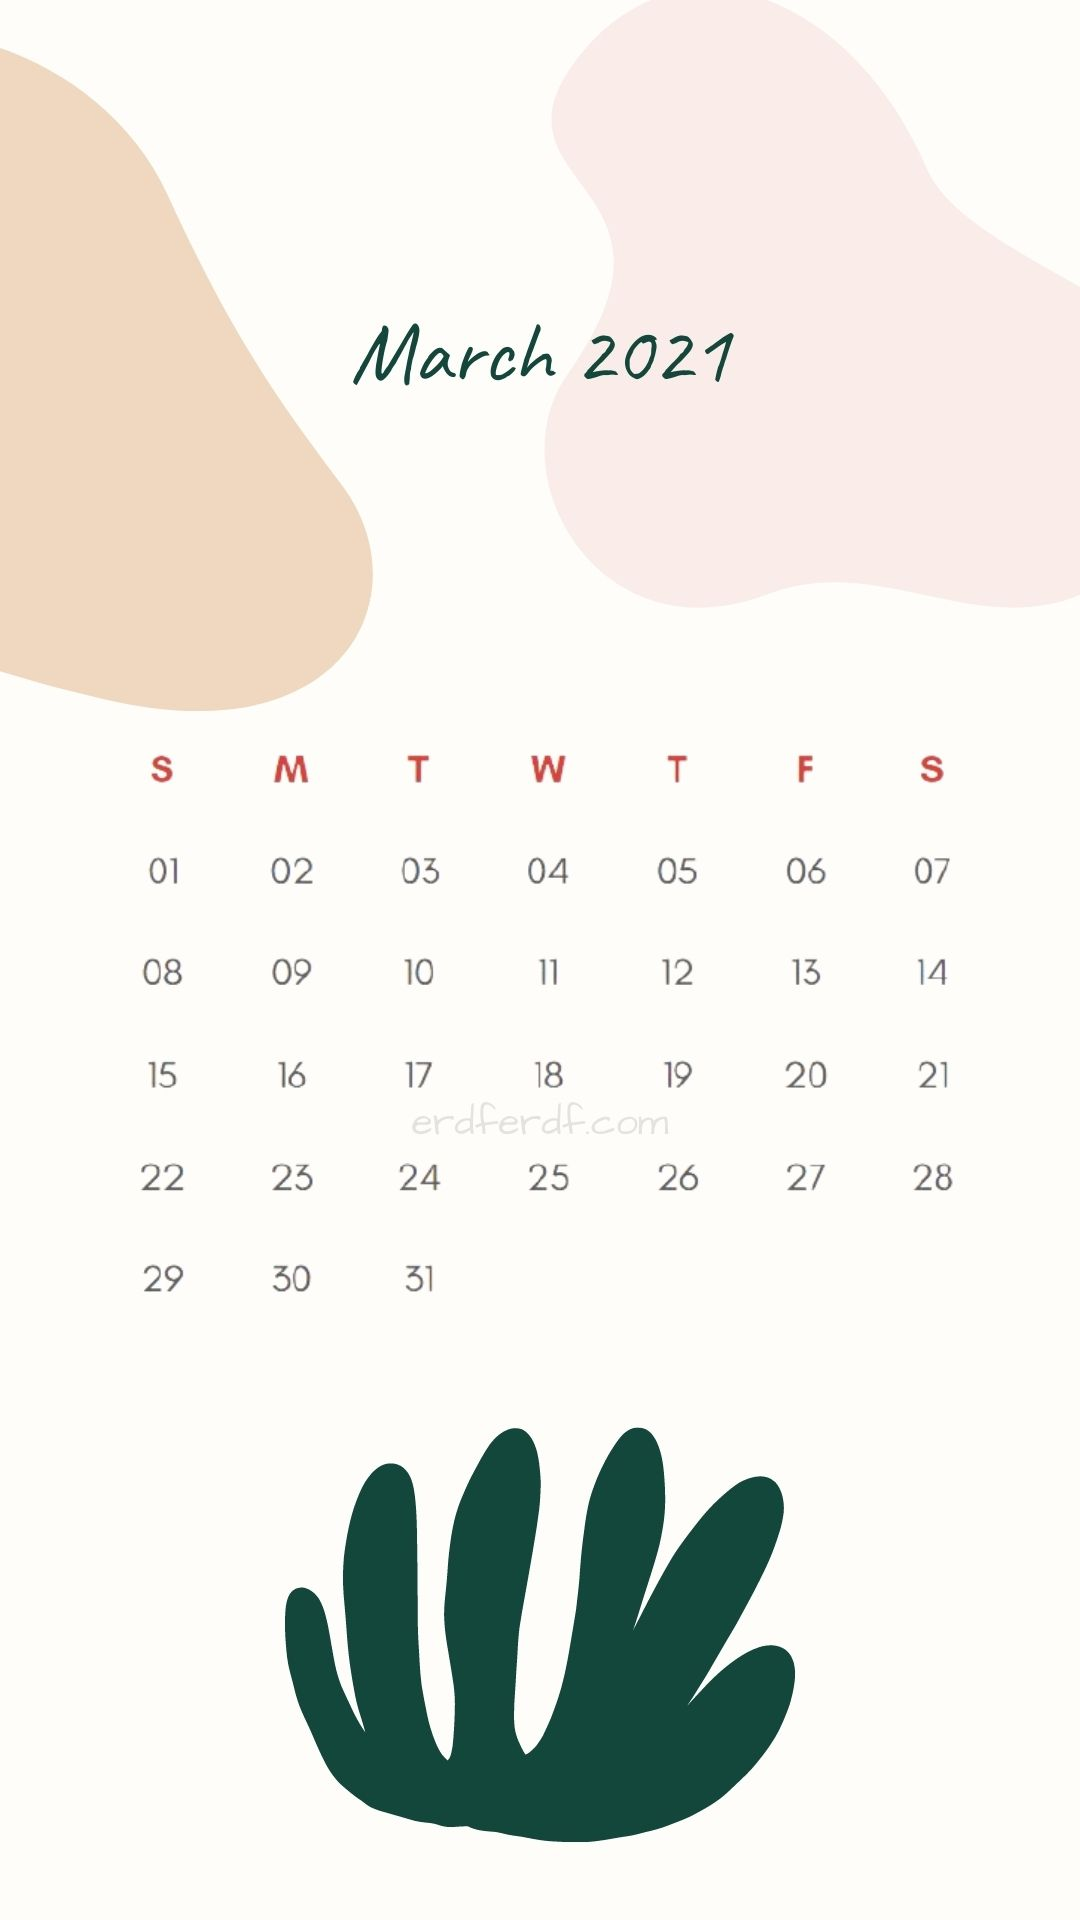 Iphone Wallpaper March 2021 Calendar Free White Love